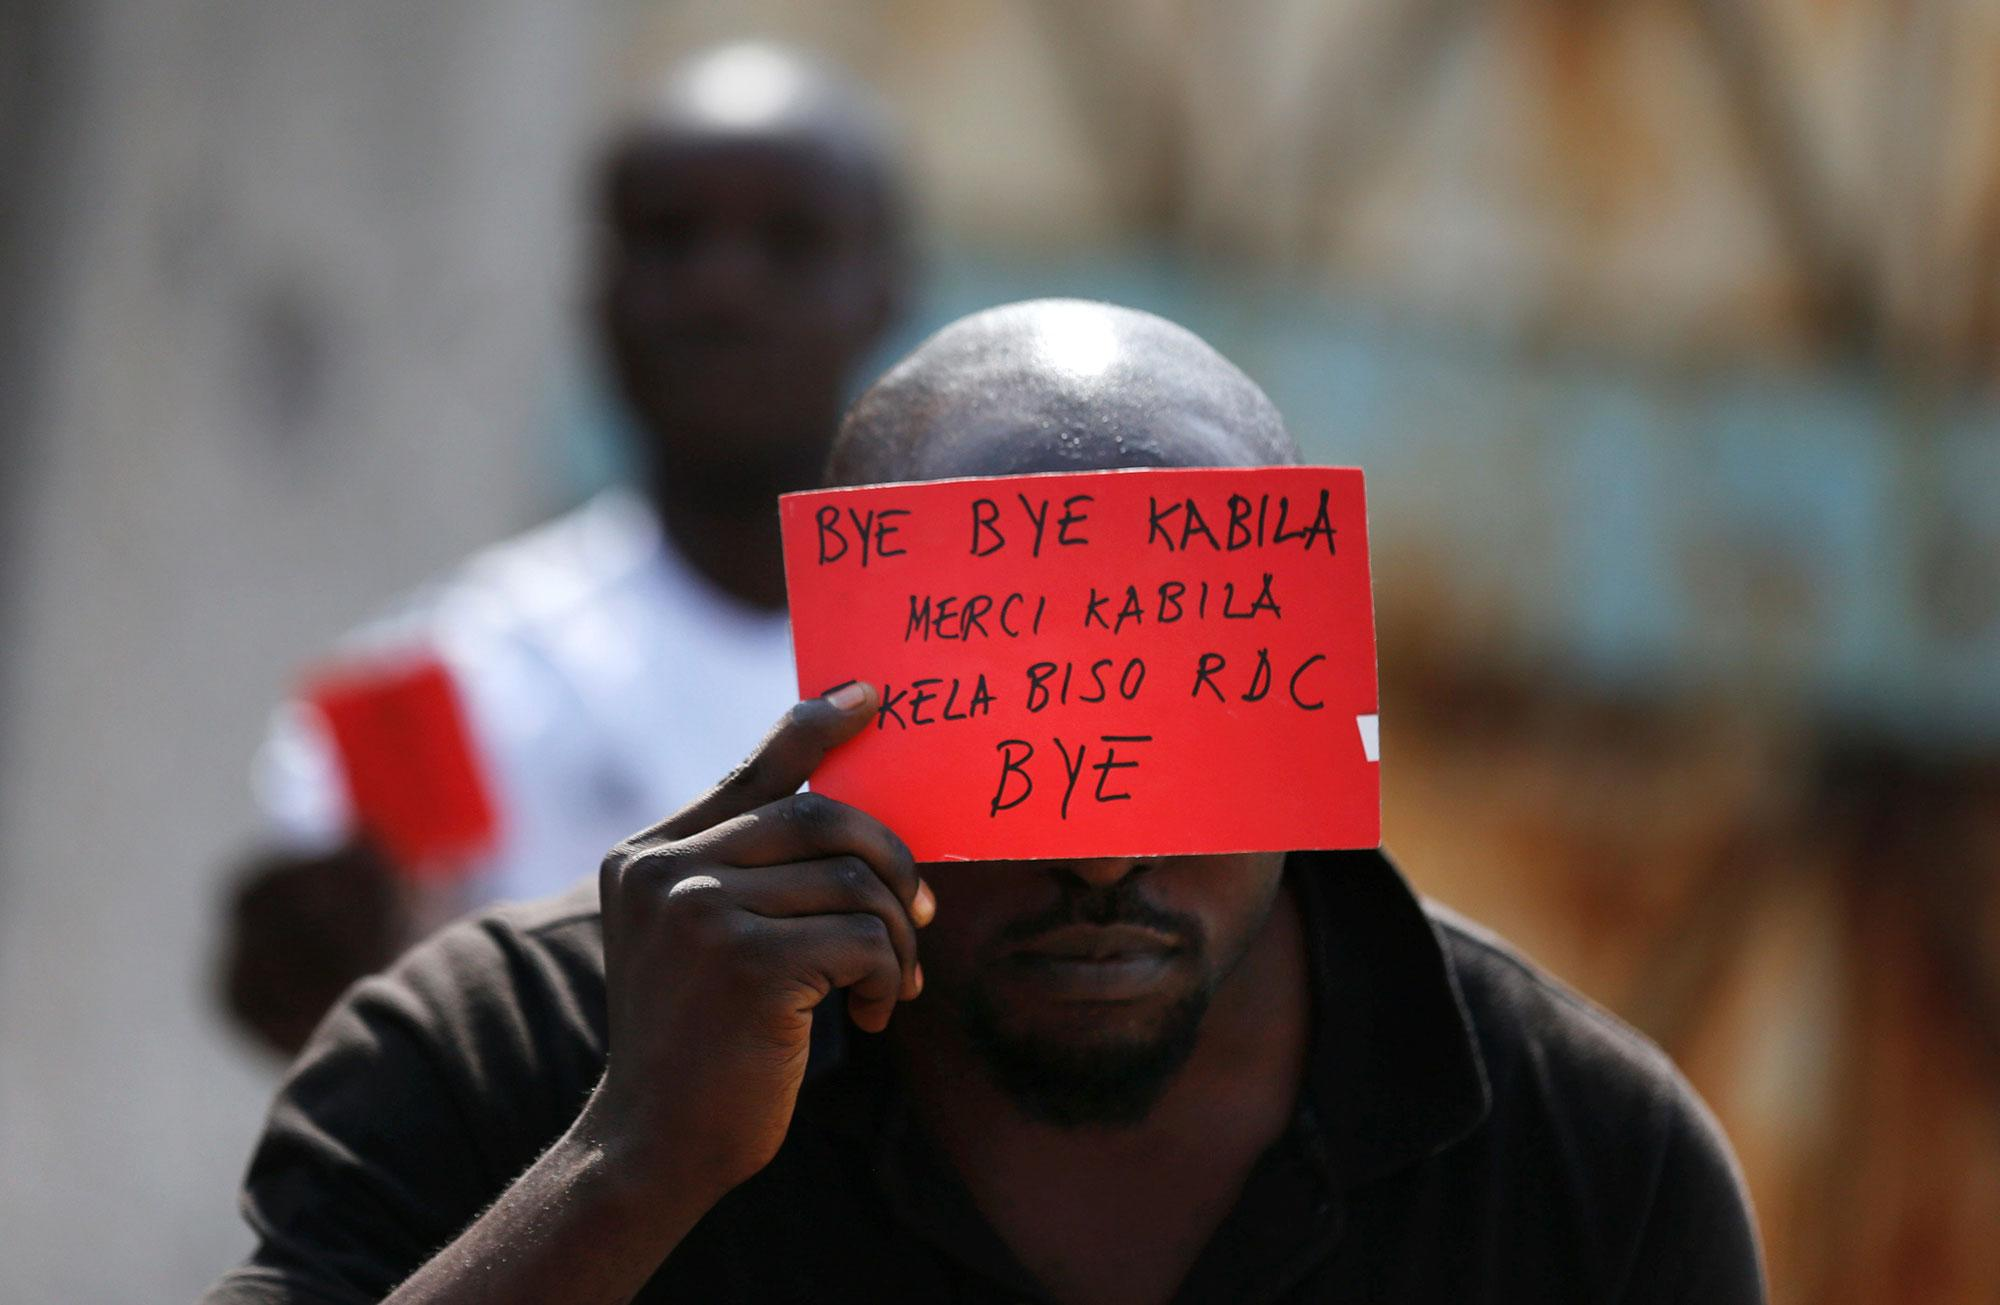 <p>A Congolese opposition party supporter displays a red card against President Joseph Kabila in Kinshasa, Democratic Republic of Congo on Dec. 19, 2016. (Photo: Thomas Mukoya/Reuters) </p>